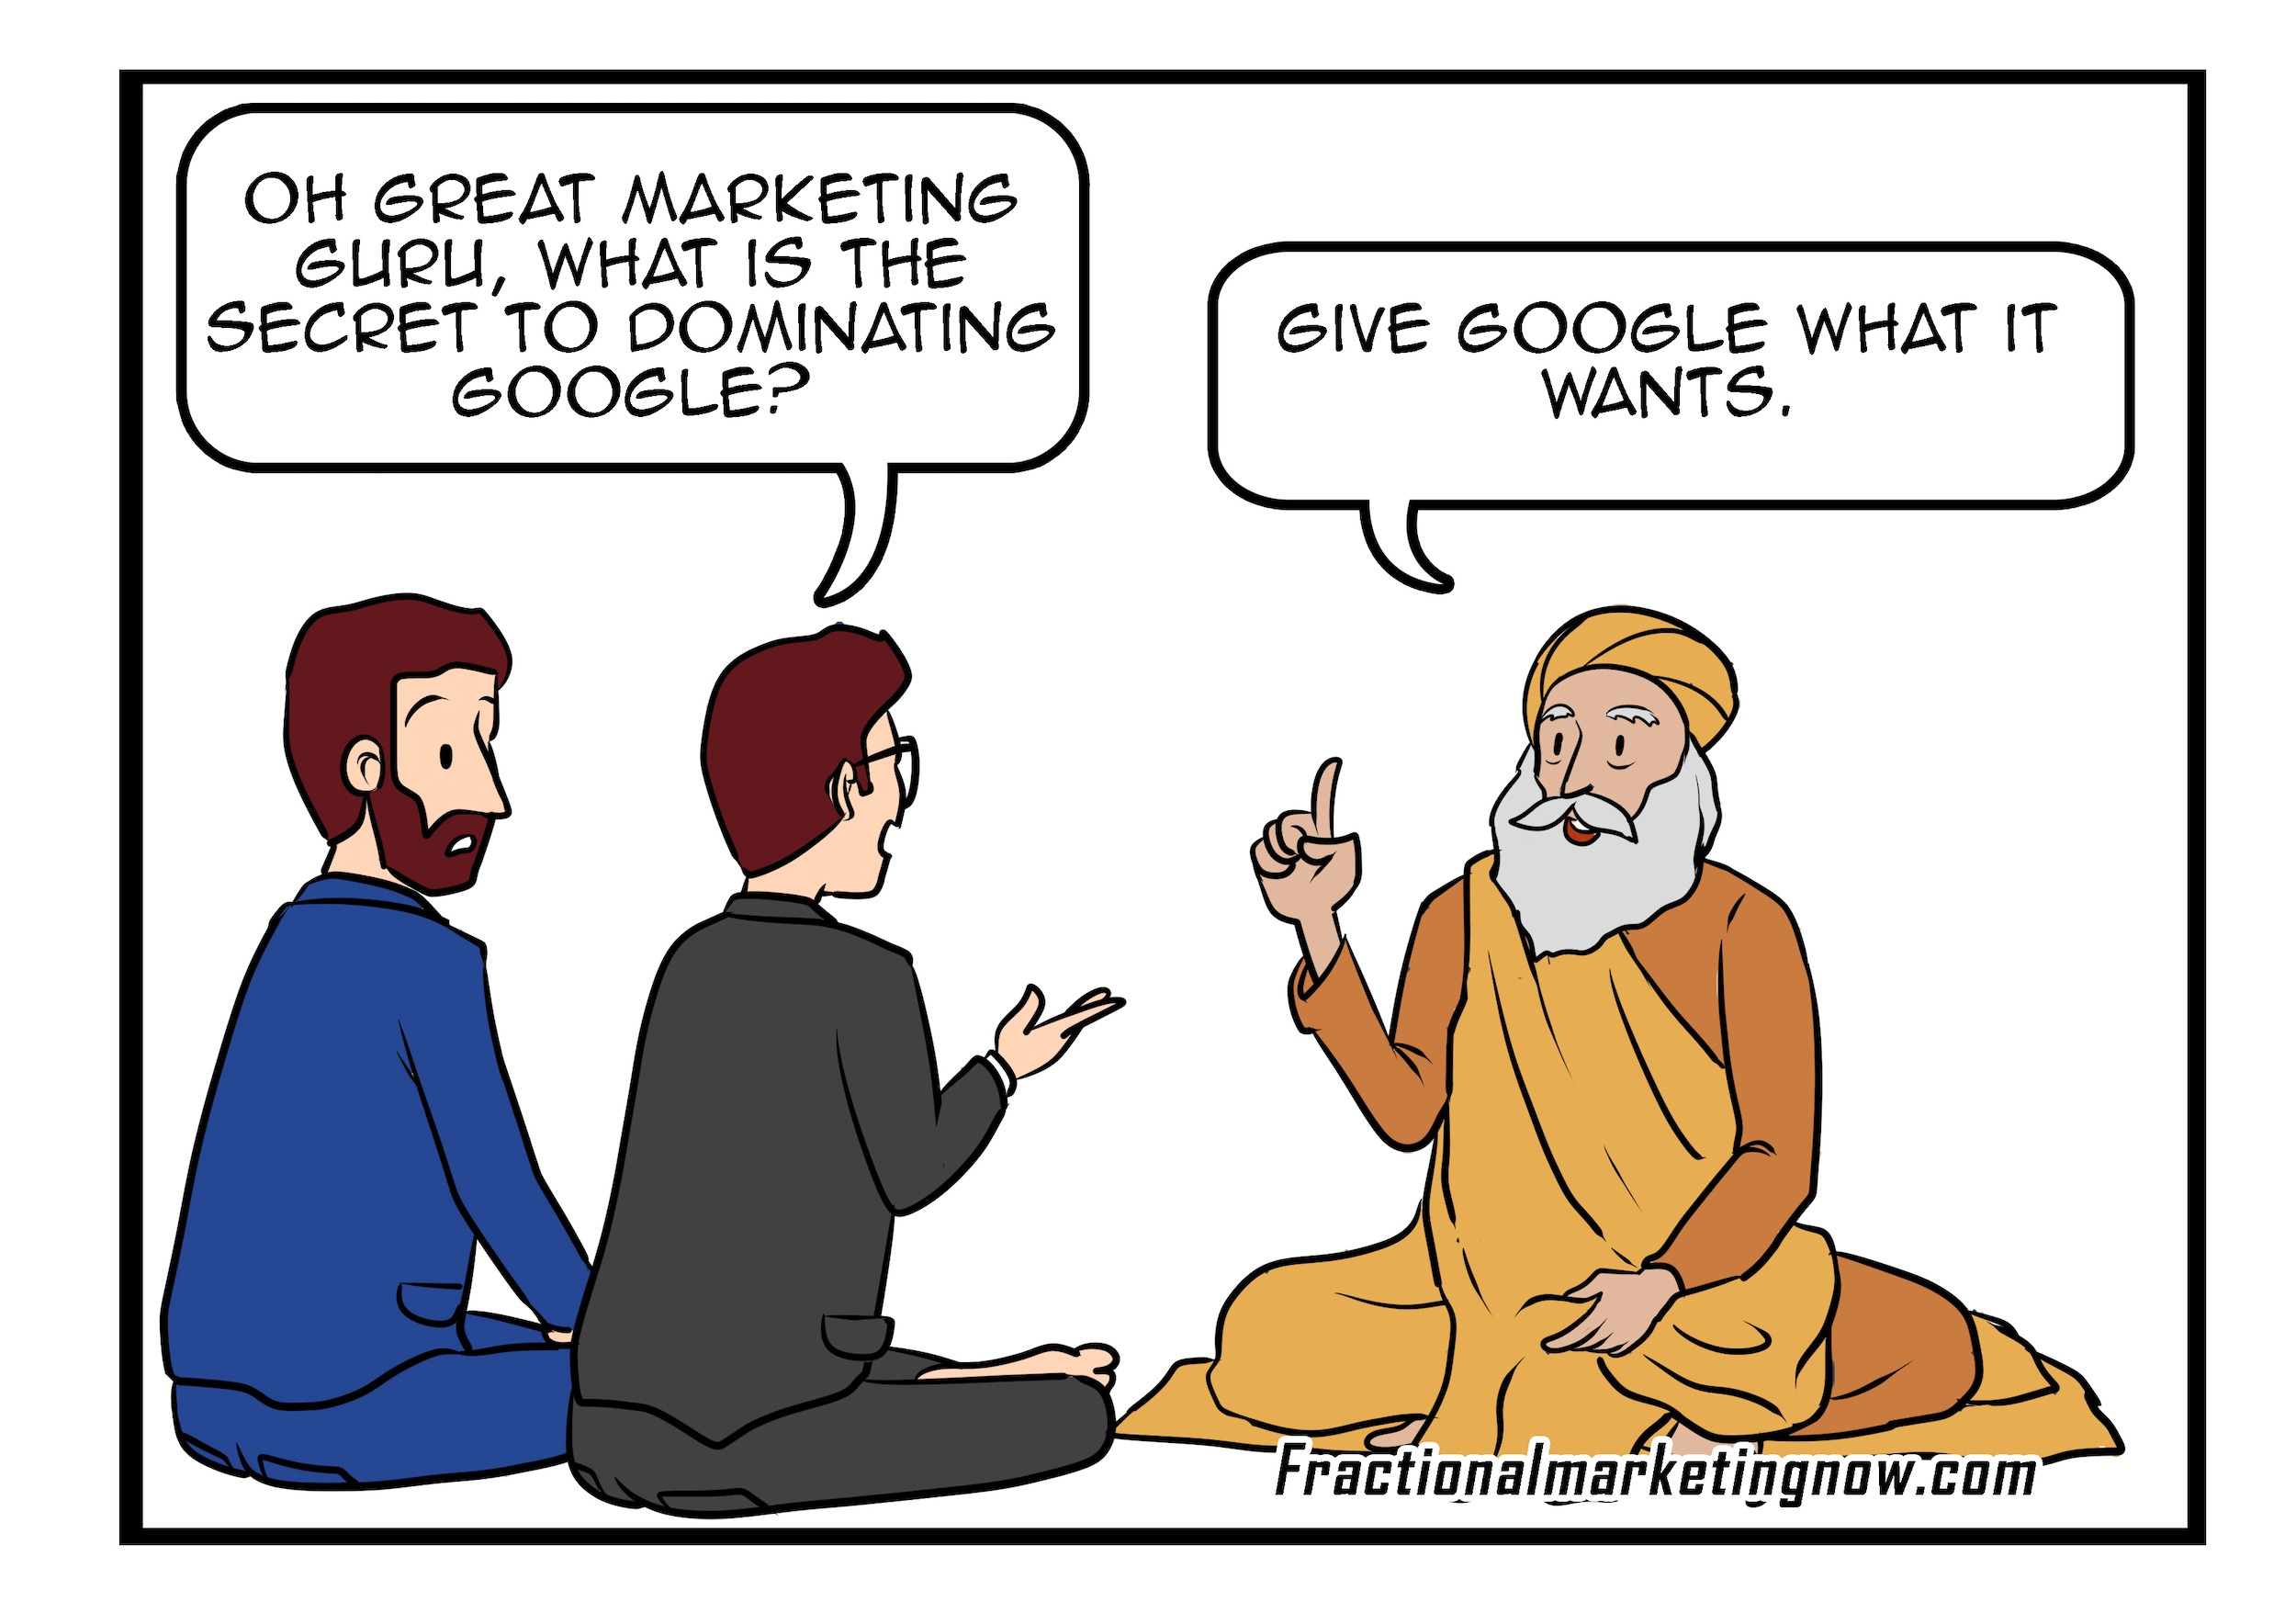 Fractional Marketing Expertise – What Do We Do In Marketing To Get Google Rankings?